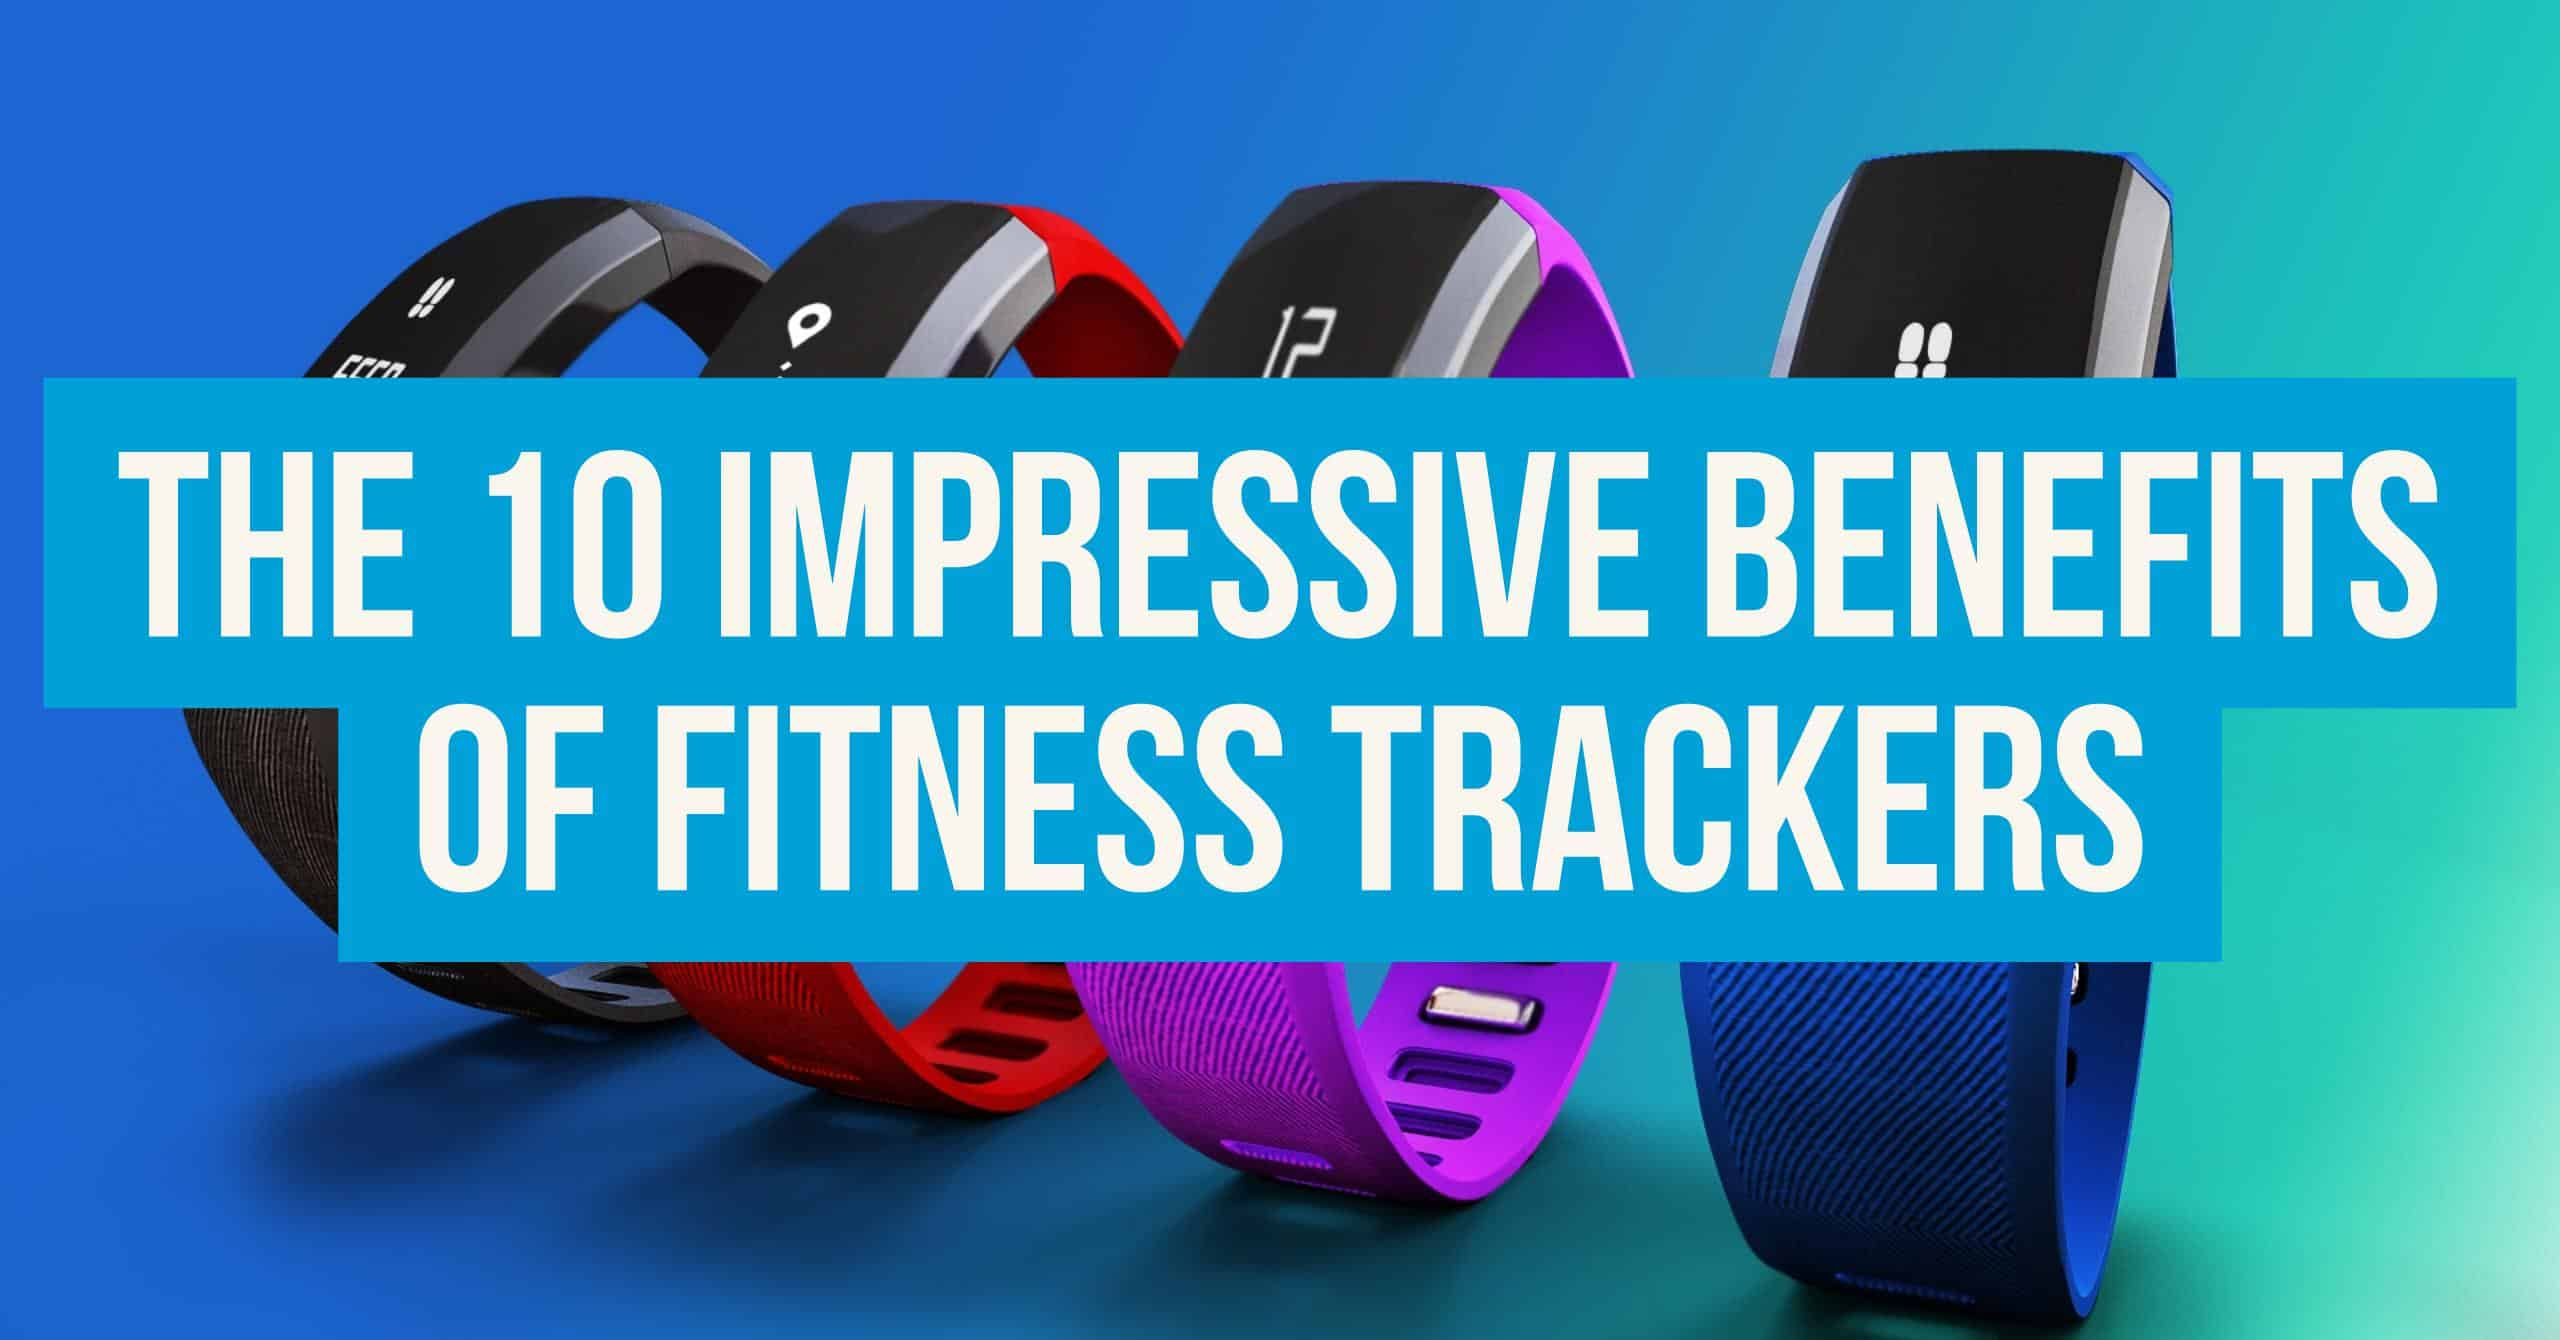 One of the things that motivate runners to put more effort in their runs is when they notice good progress. Fitness trackers helps us keep track of important things like when we PR. Here are the 10 most impressive benefits of fitness trackers for runners.